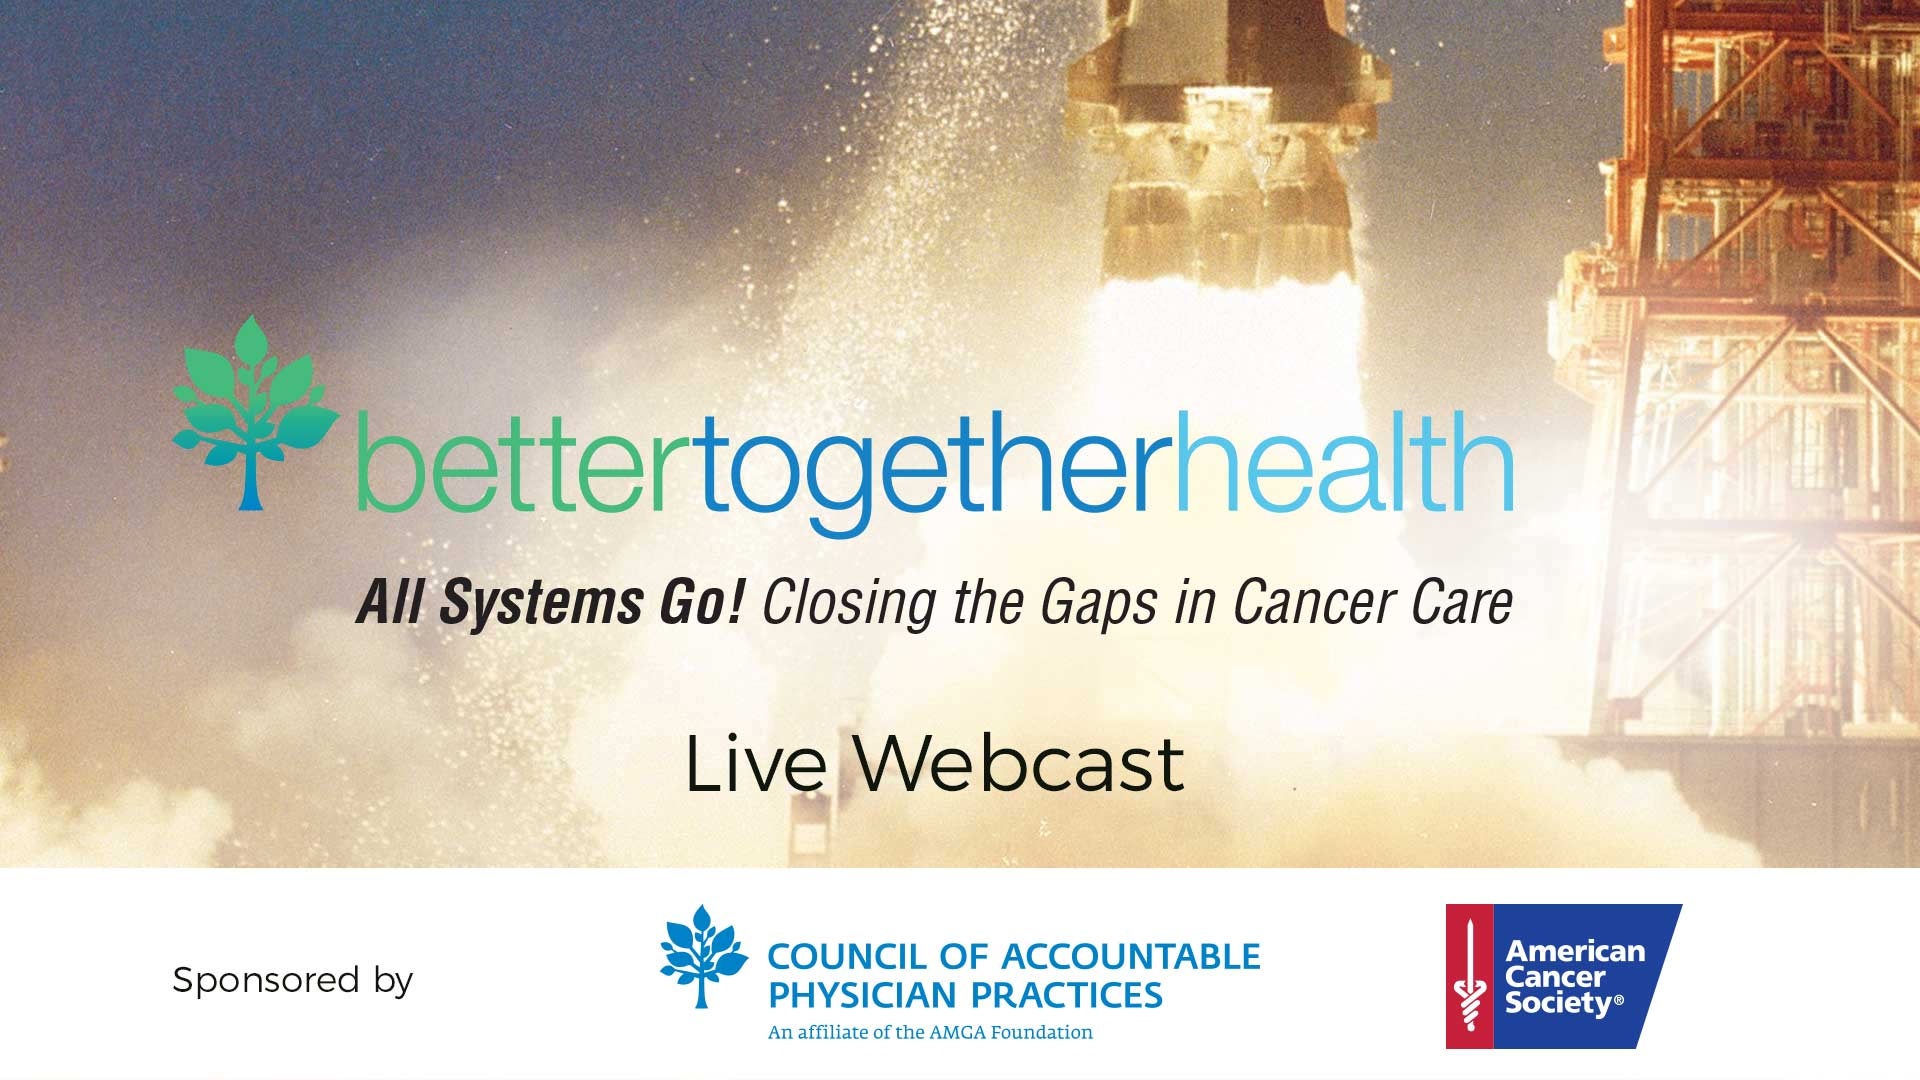 Better Together Health 2017: All Systems Go! Closing the Cancer Care Gap — Webcast!